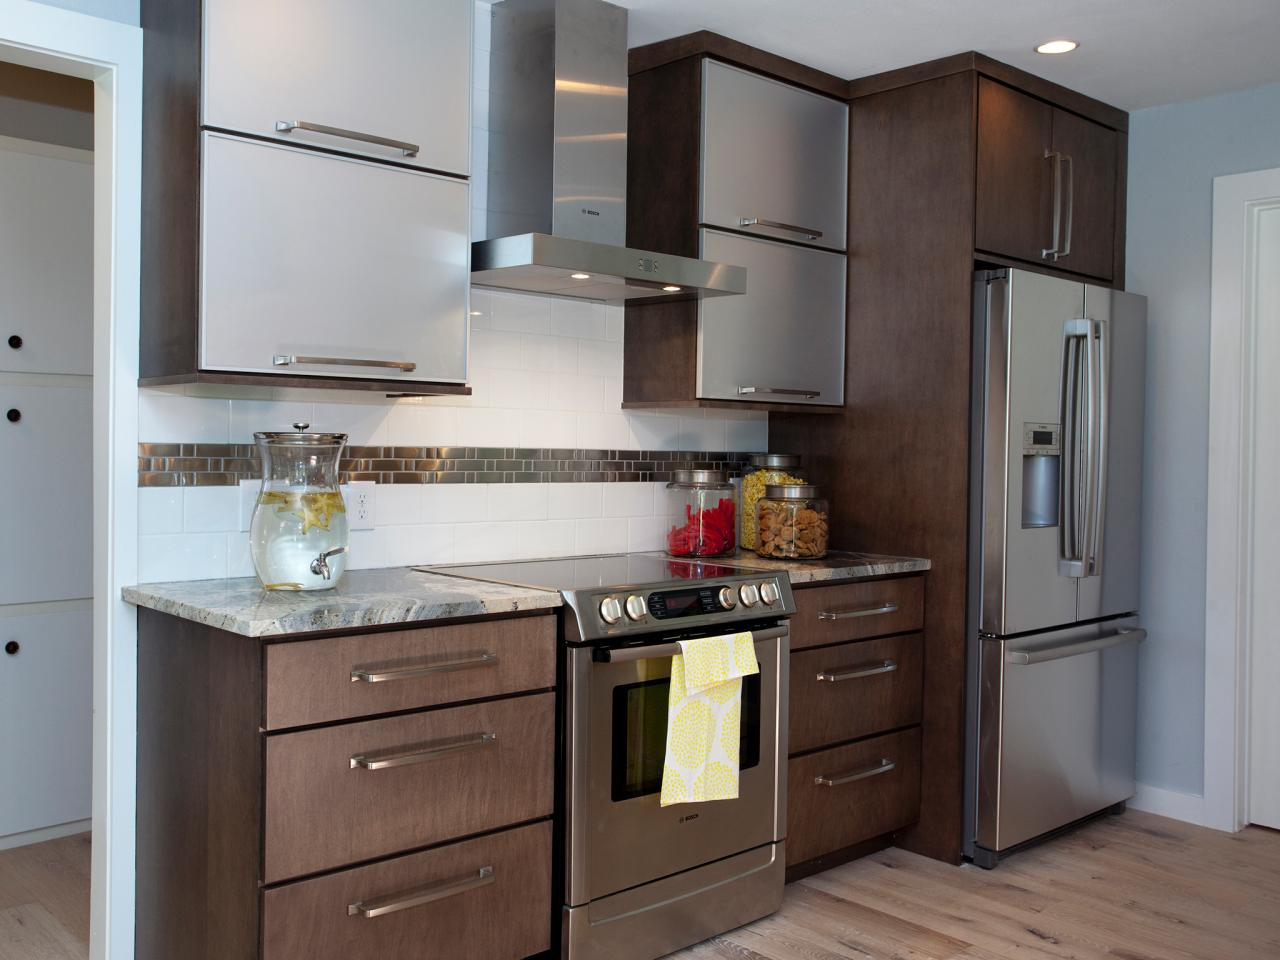 Cool Design Of The Stainless Steel Kitchen Cabinets With Brown Wooden Drawers Added With Brown Wooden Floor Ideas